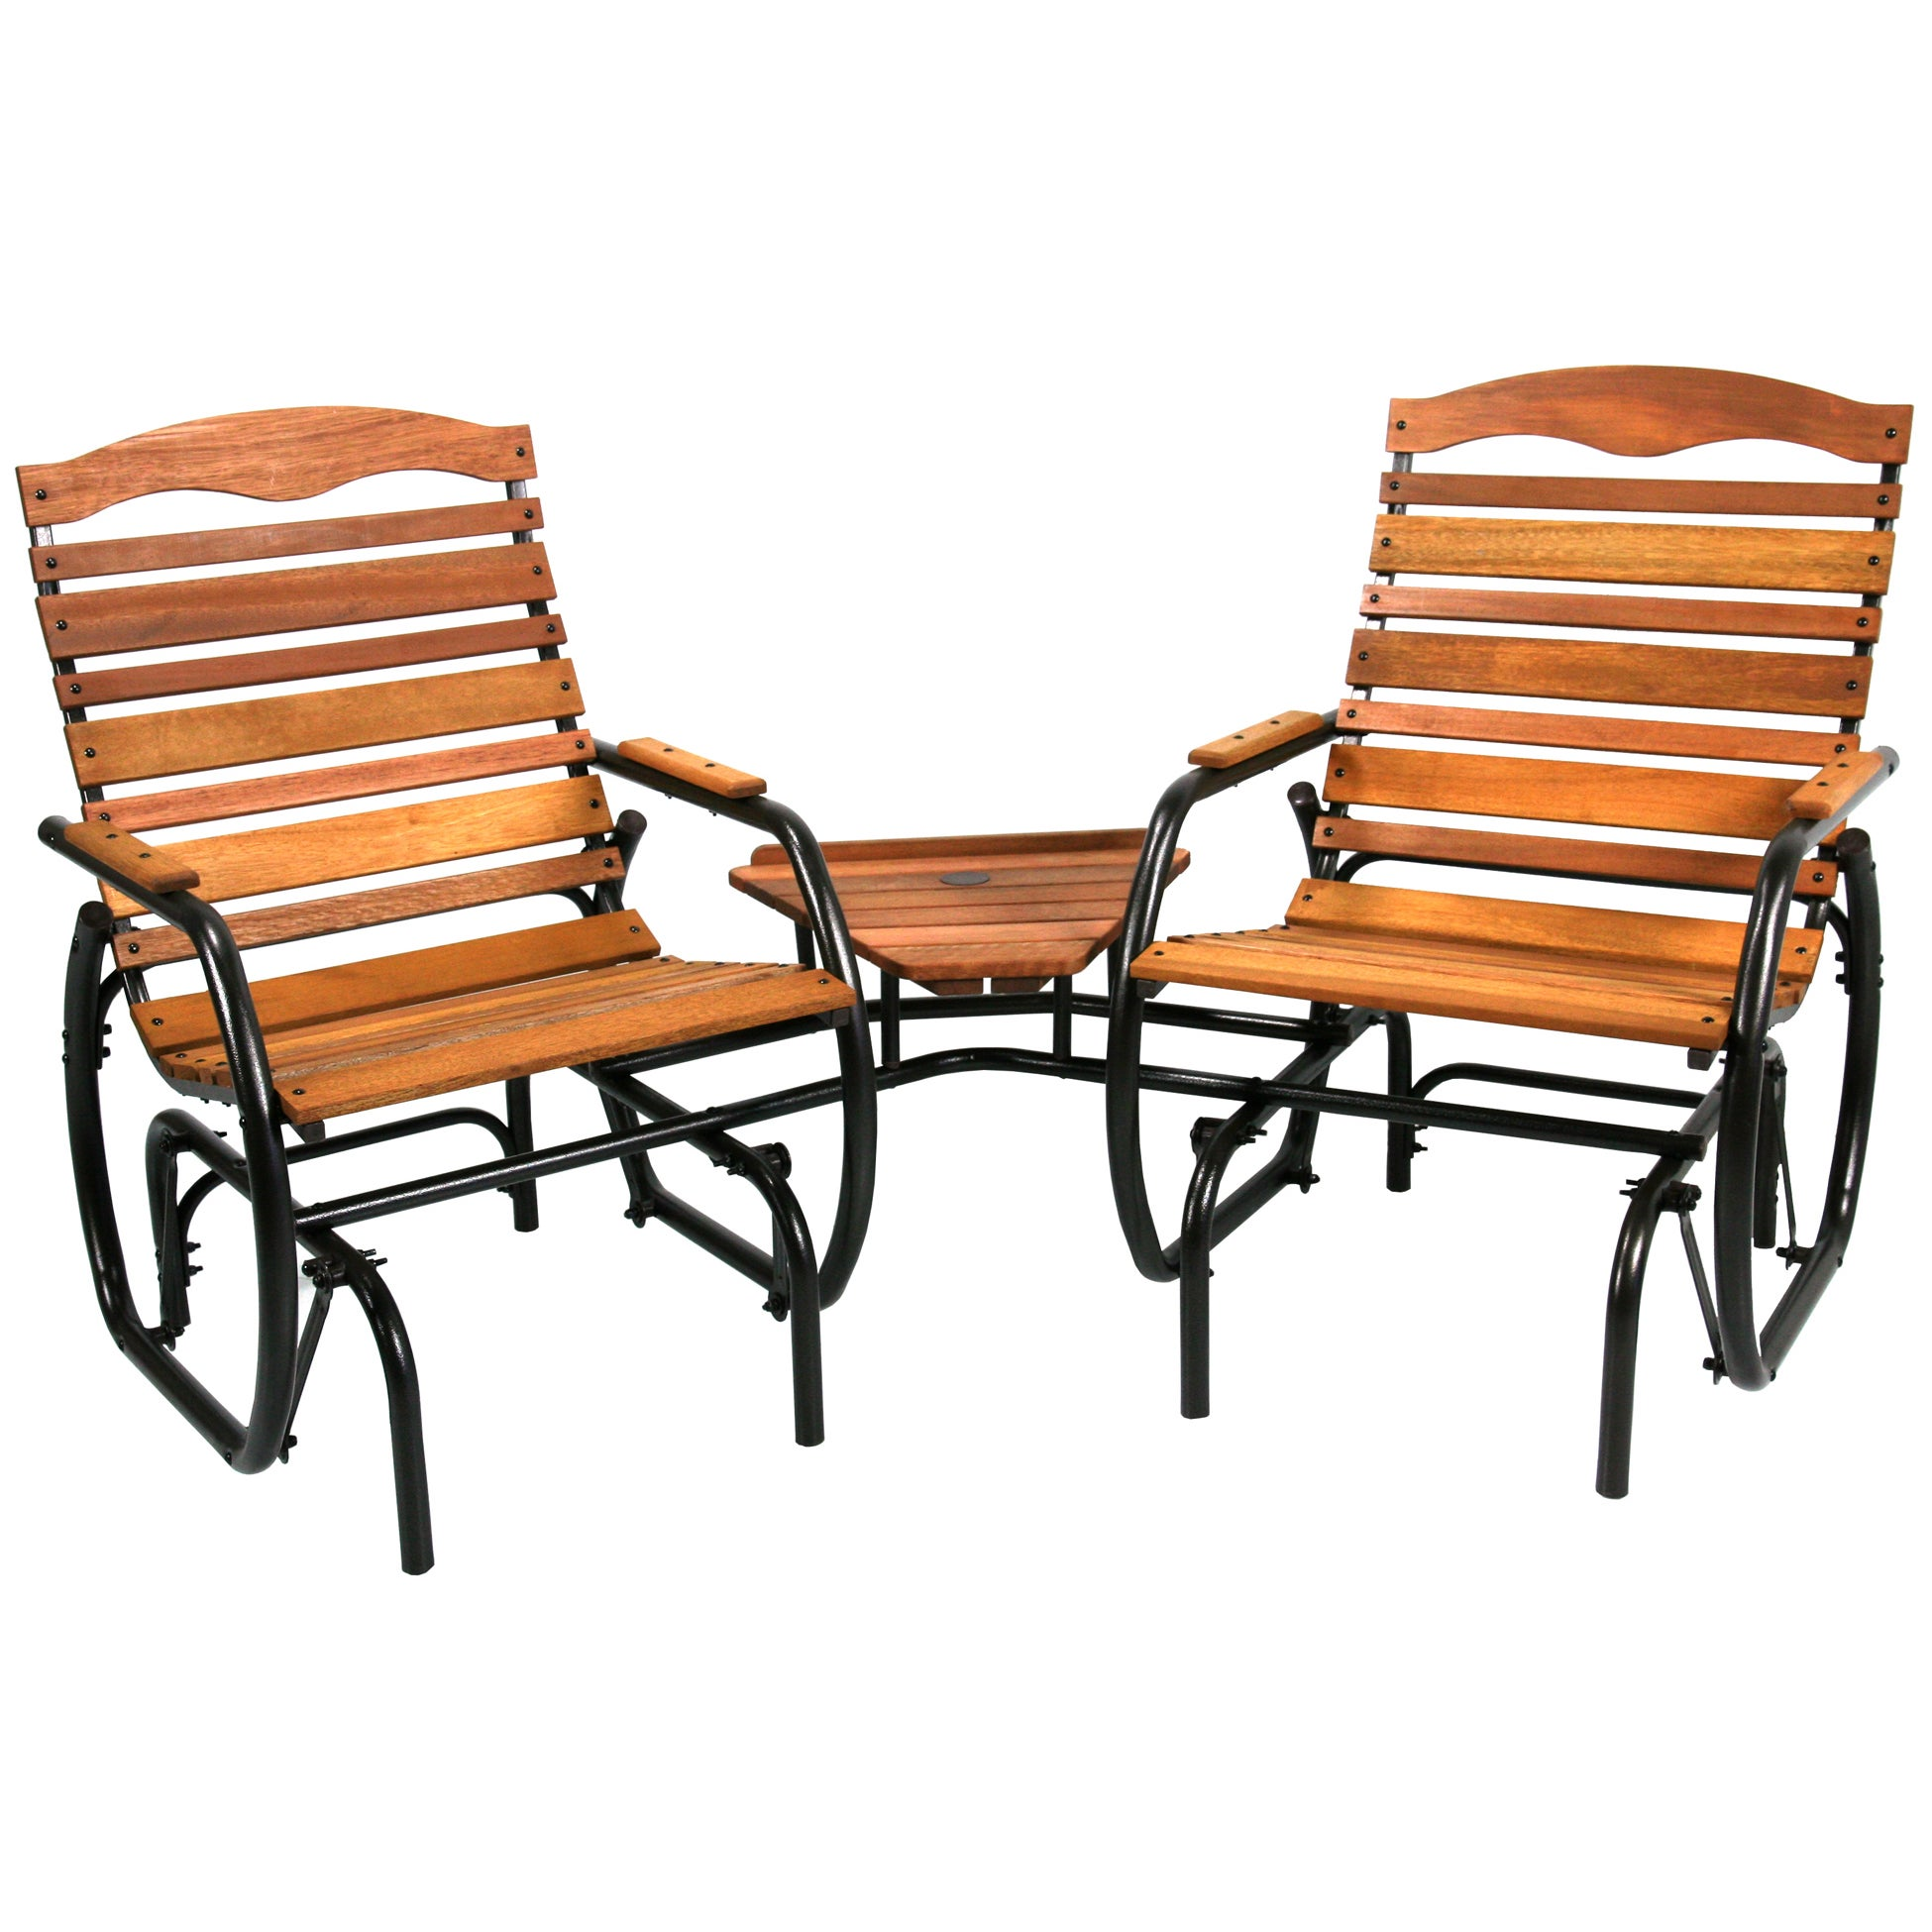 Patio Glider Chairs Garden Tete A Rocking Double 2 Person Outdoor Armchair